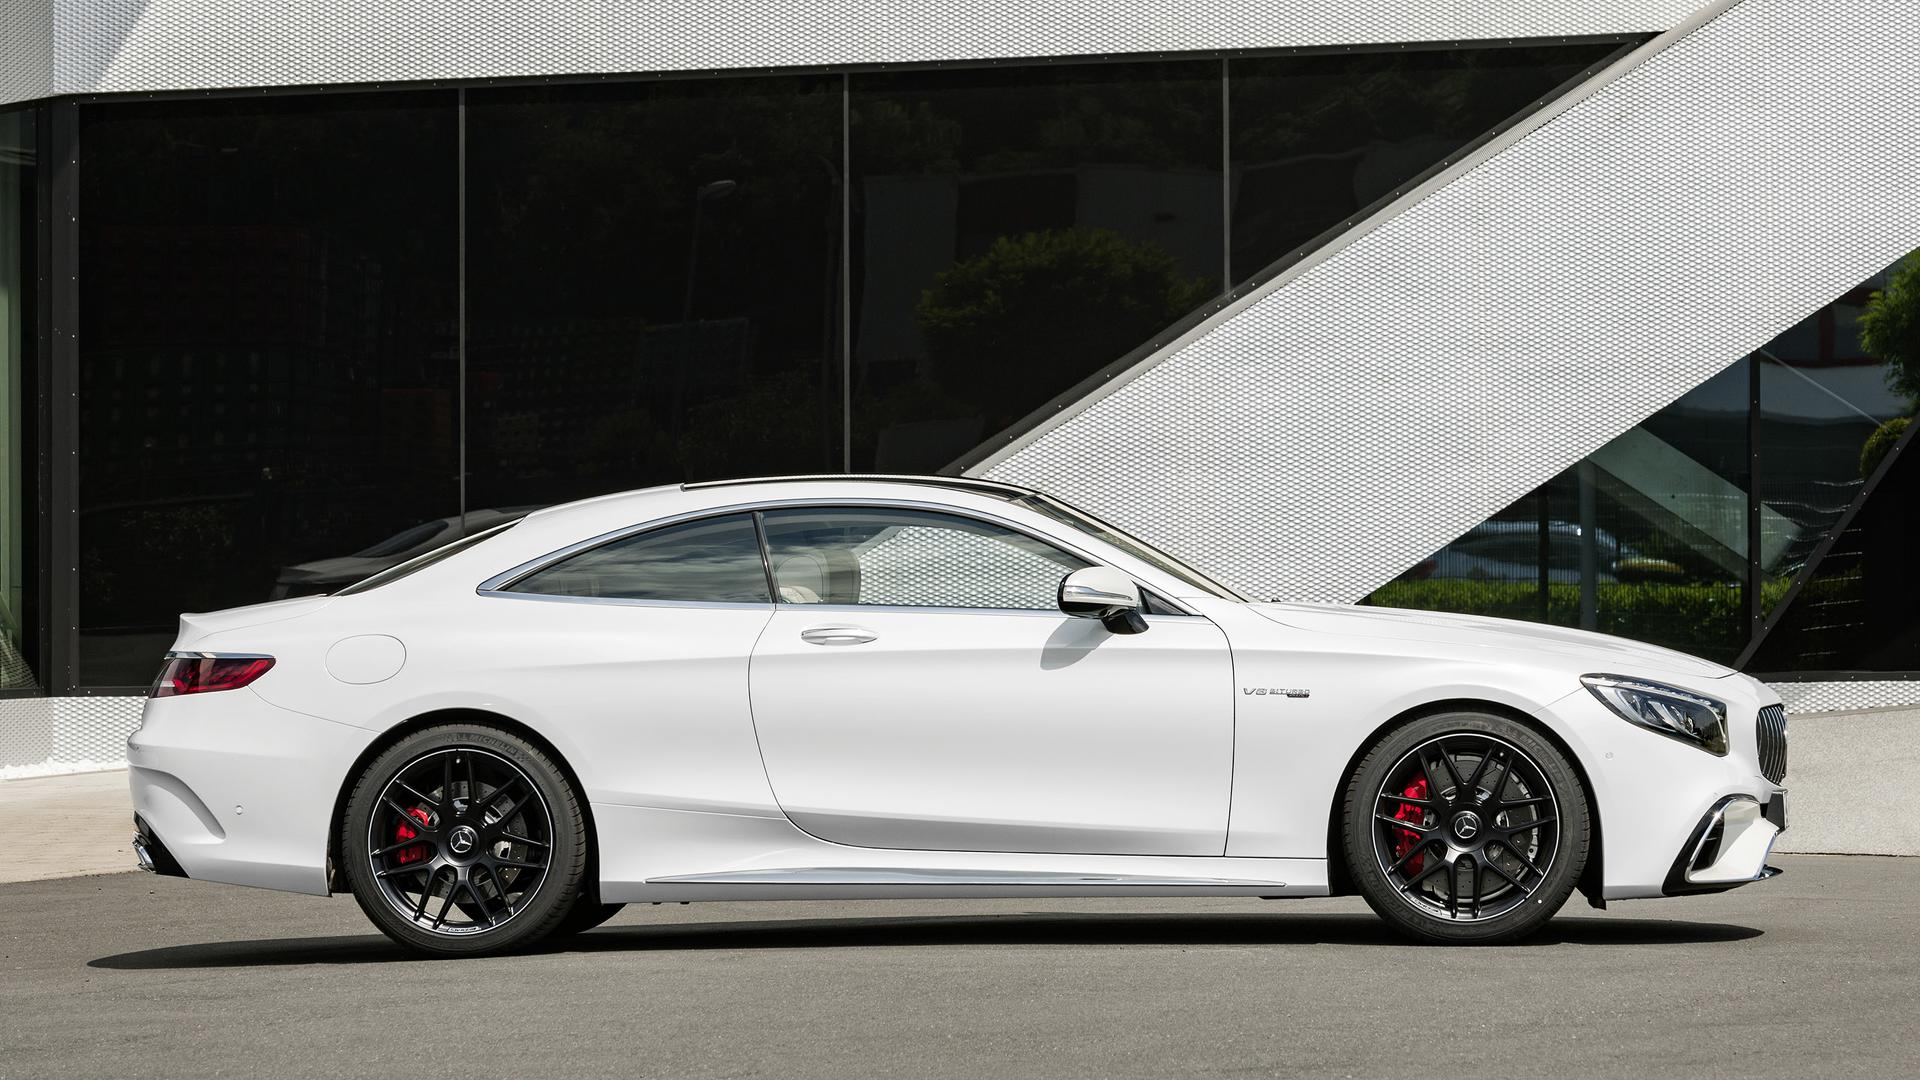 https://icdn-3.motor1.com/images/mgl/ALmg2/s1/2018-mercedes-amg-s63-coupe.jpg